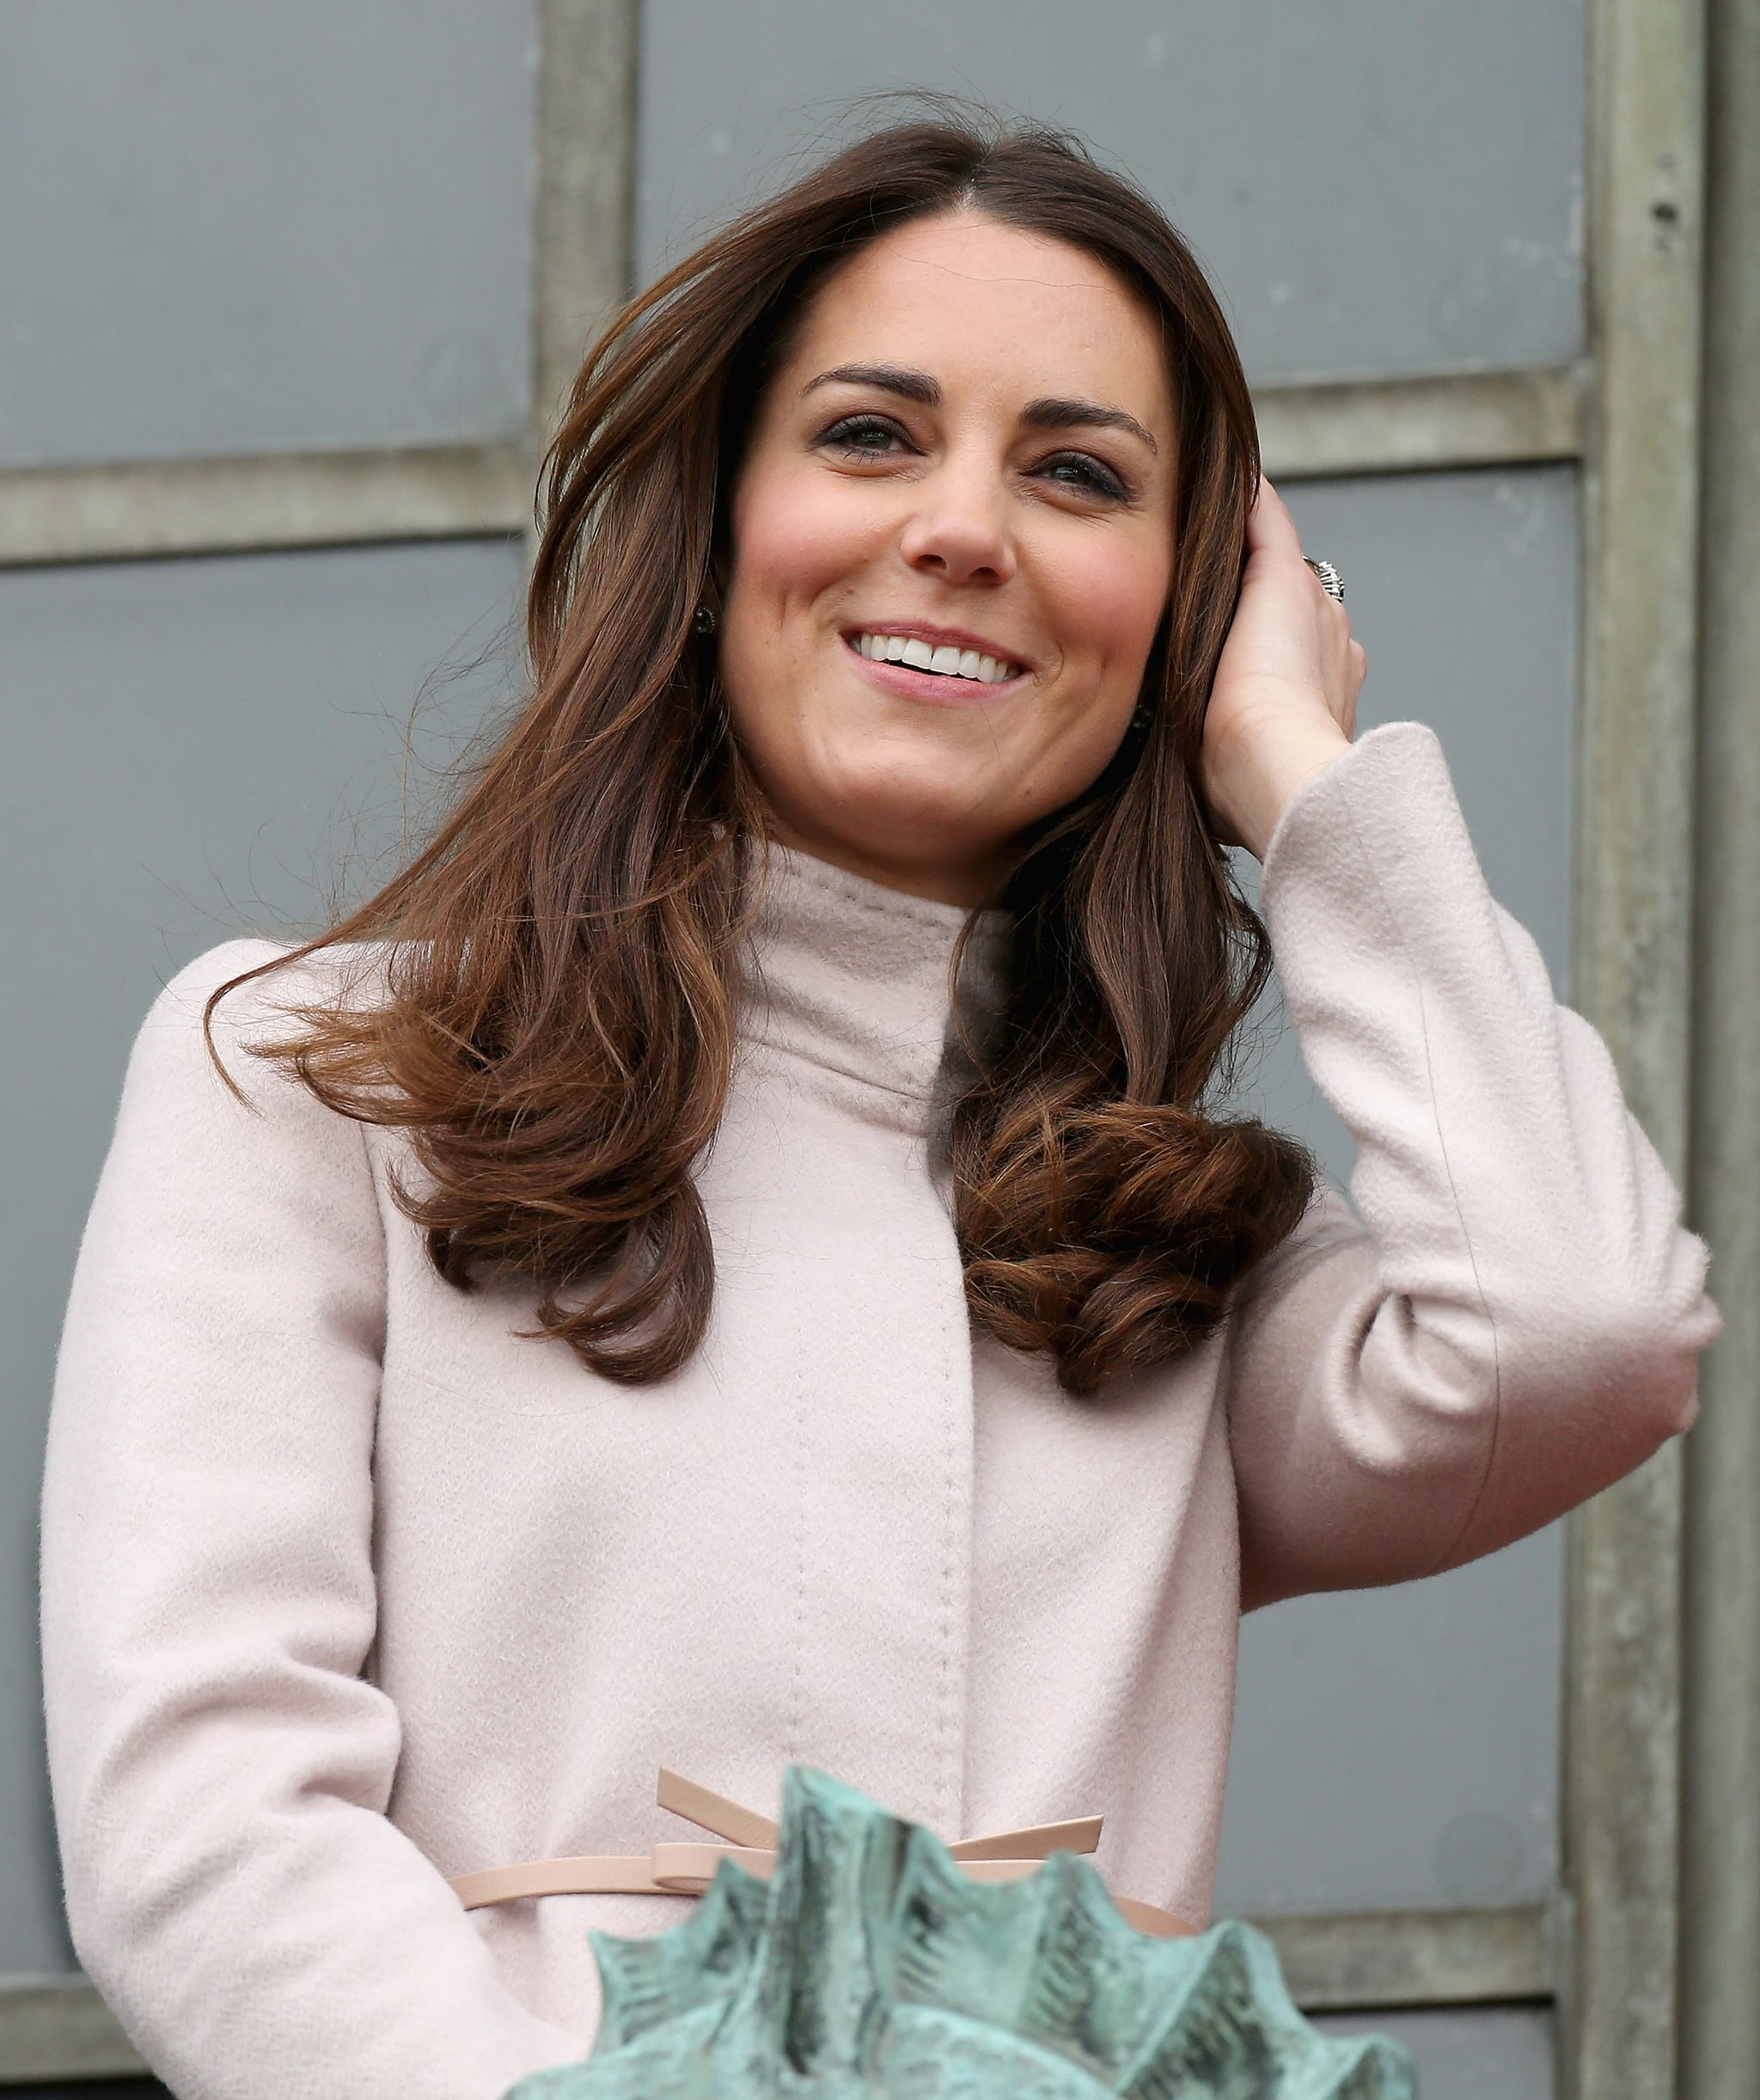 Kate Middleton wore a camel-colored jacket in Cambridge.